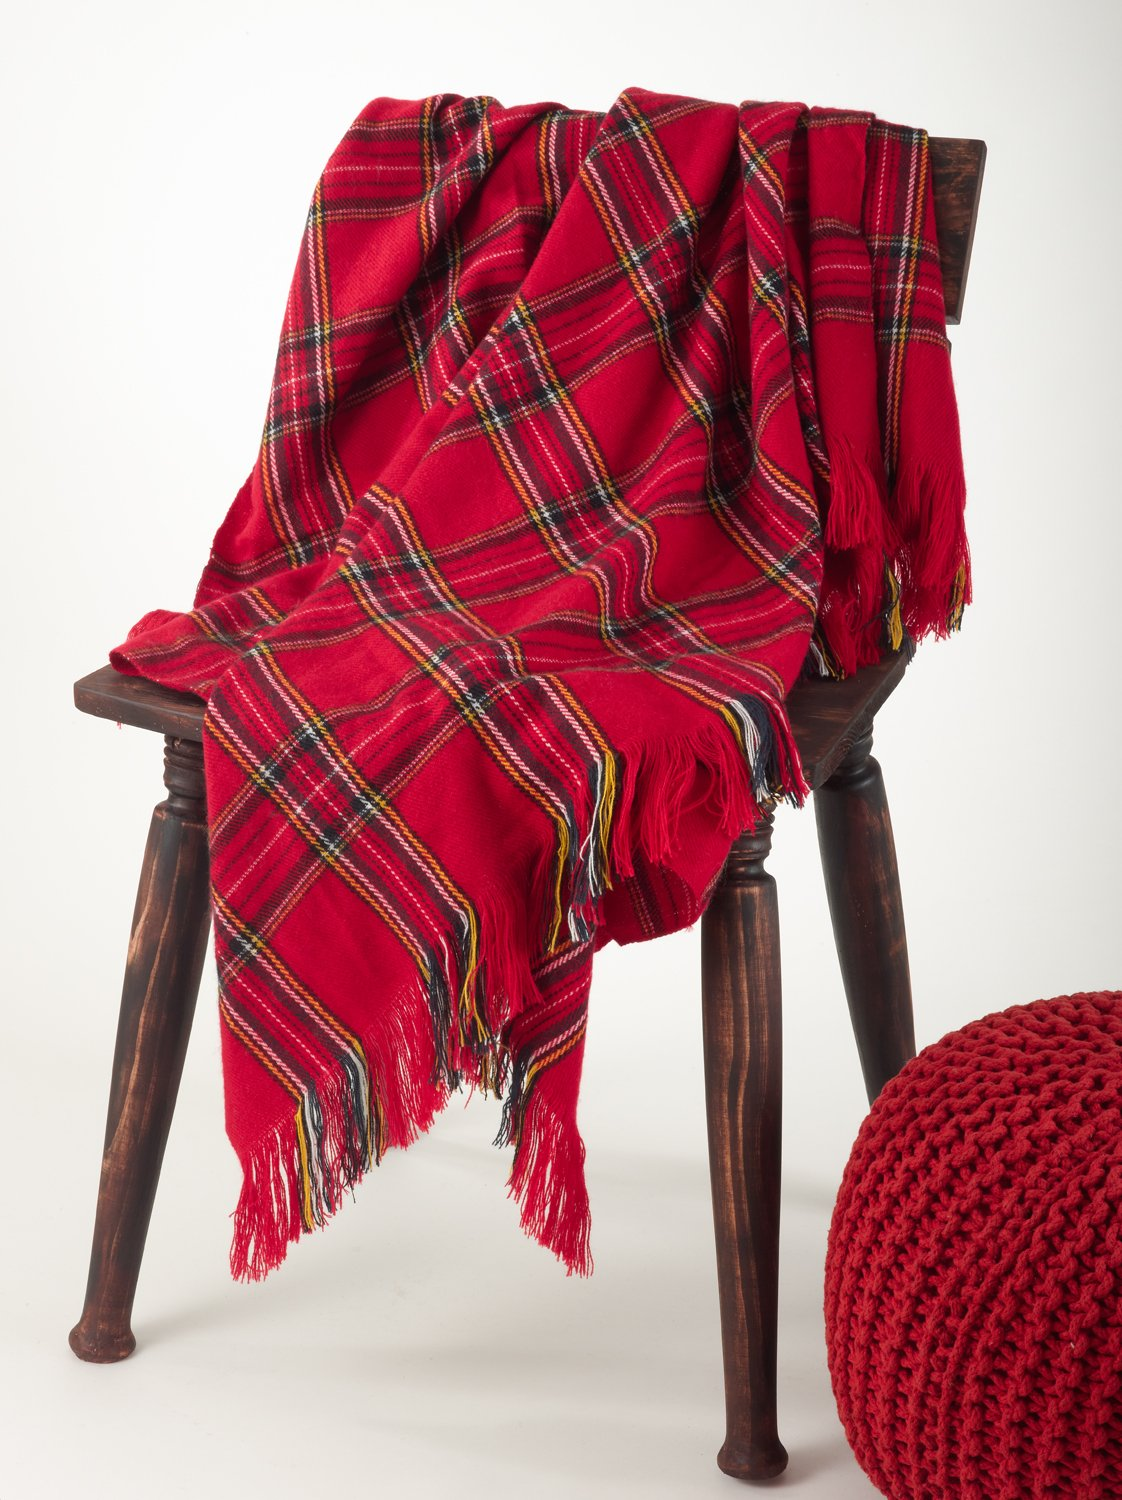 Classic Red Plaid Design Throw Blanket, 50